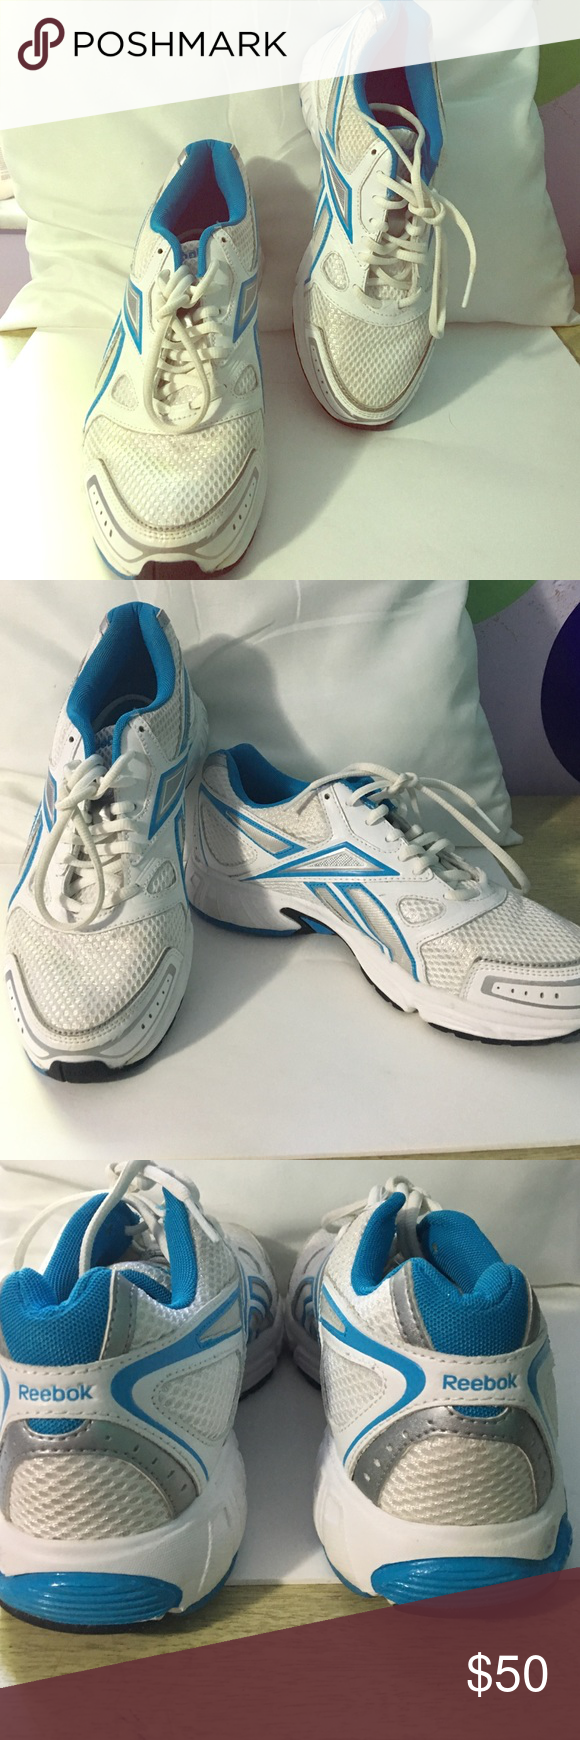 White and blue tennis shoes Worn a few times. Still in great condition Reebok Shoes Athletic Shoes